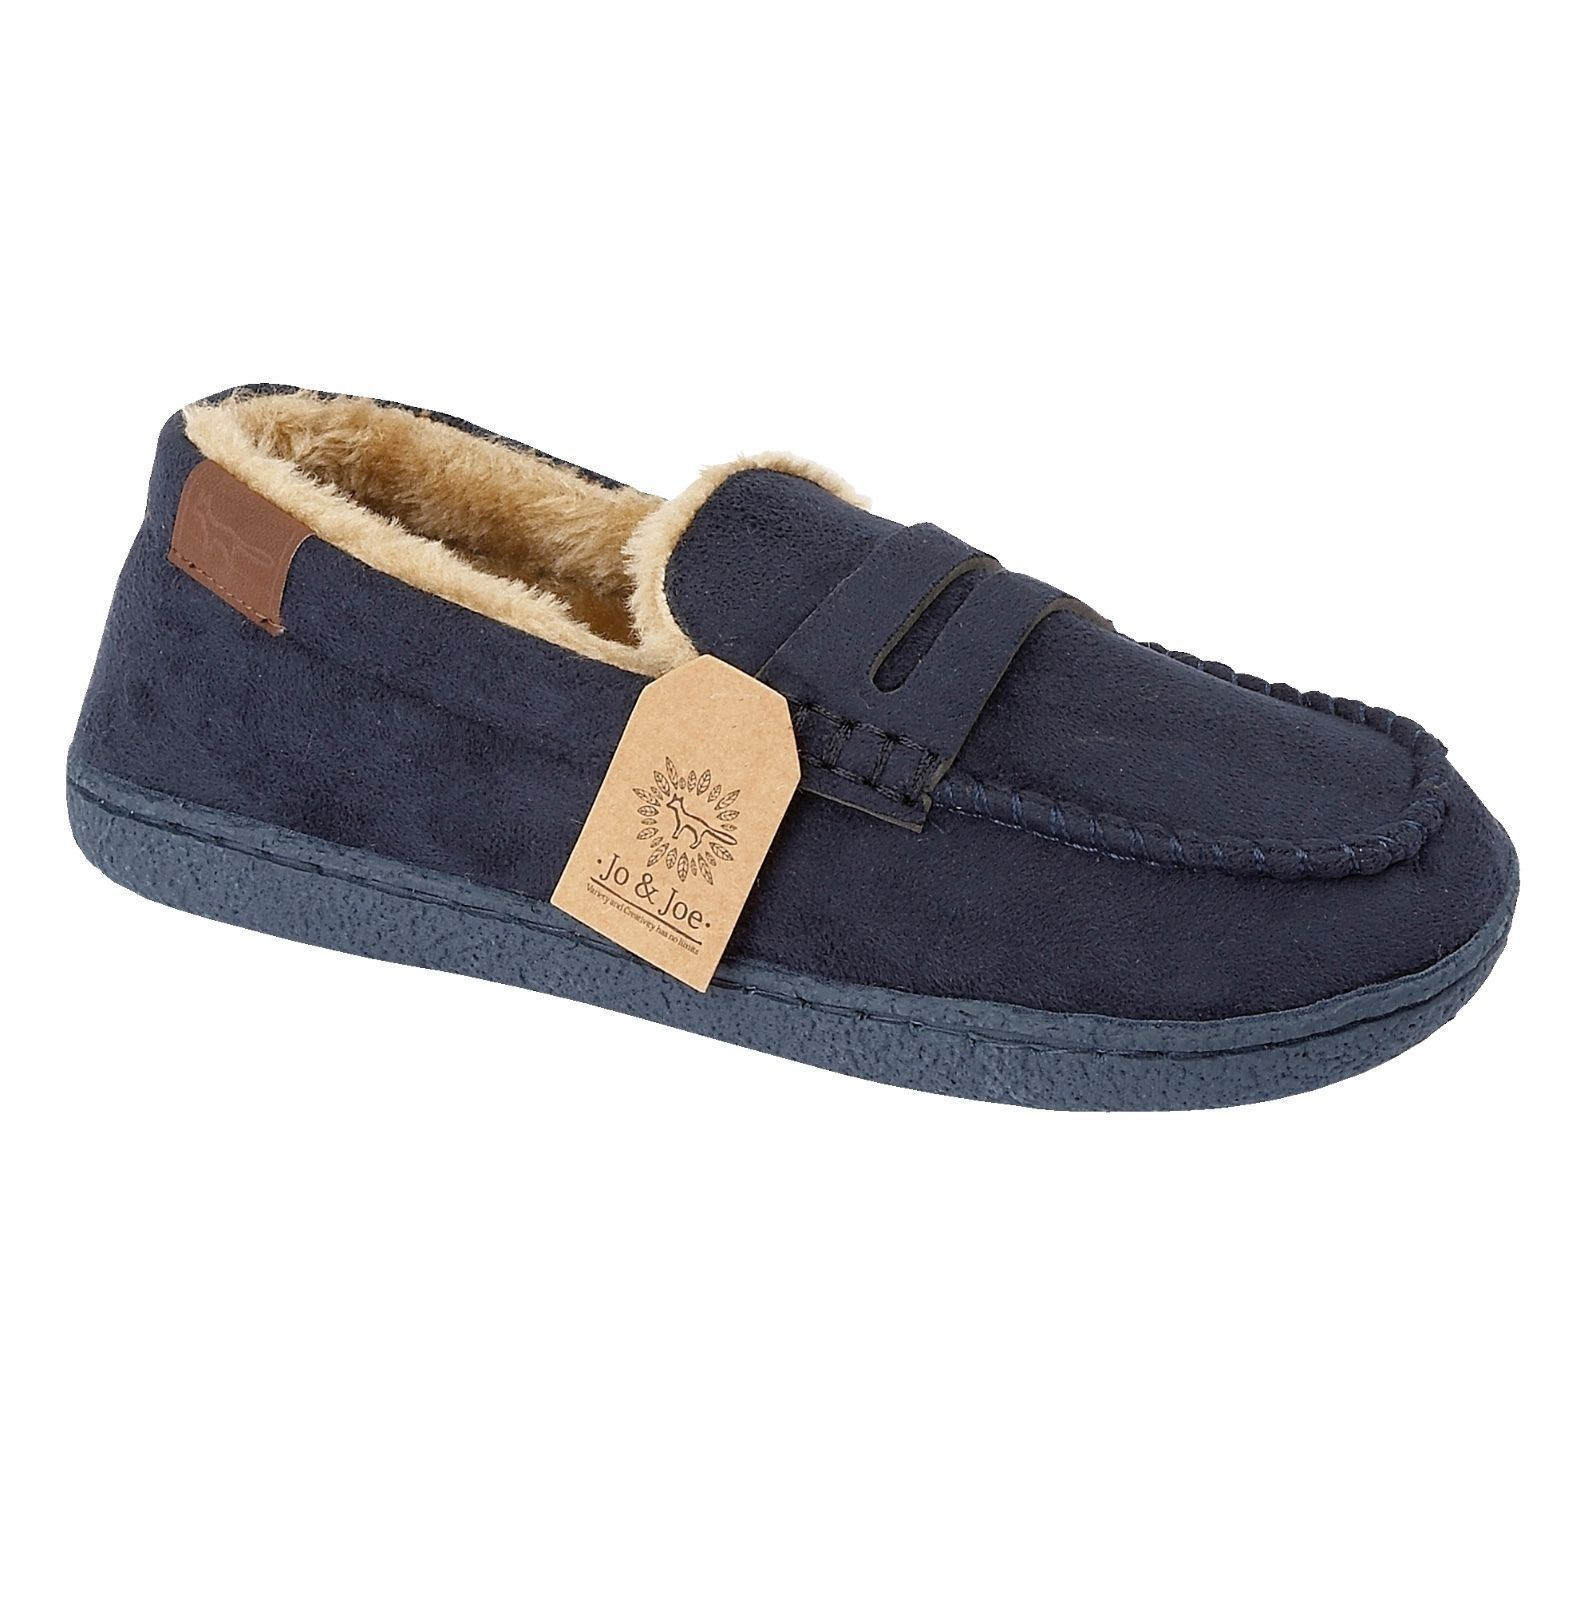 Mens-Faux-Suede-Leather-Moccasin-Slippers-Loafers-Casual-Shoes miniatura 24